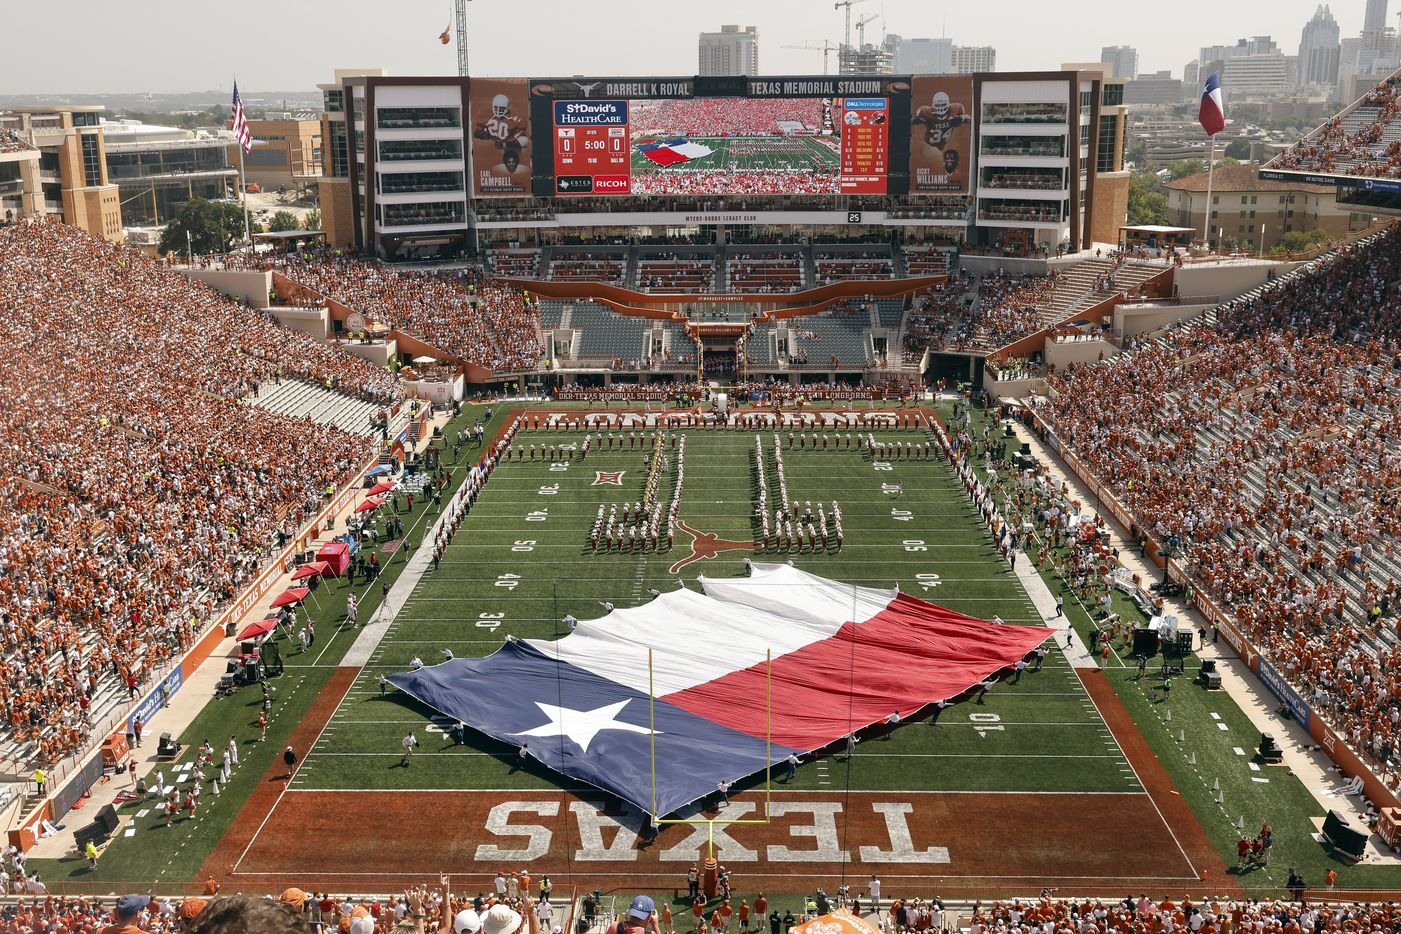 The Texas flag is spun around on the DKR-Texas Memorial Stadium before kickoff in Austin, Saturday, September 4, 2021. The Longhorns were facing the Louisiana-Lafayette Ragin Cajuns in the season opener. (Tom Fox/The Dallas Morning News)